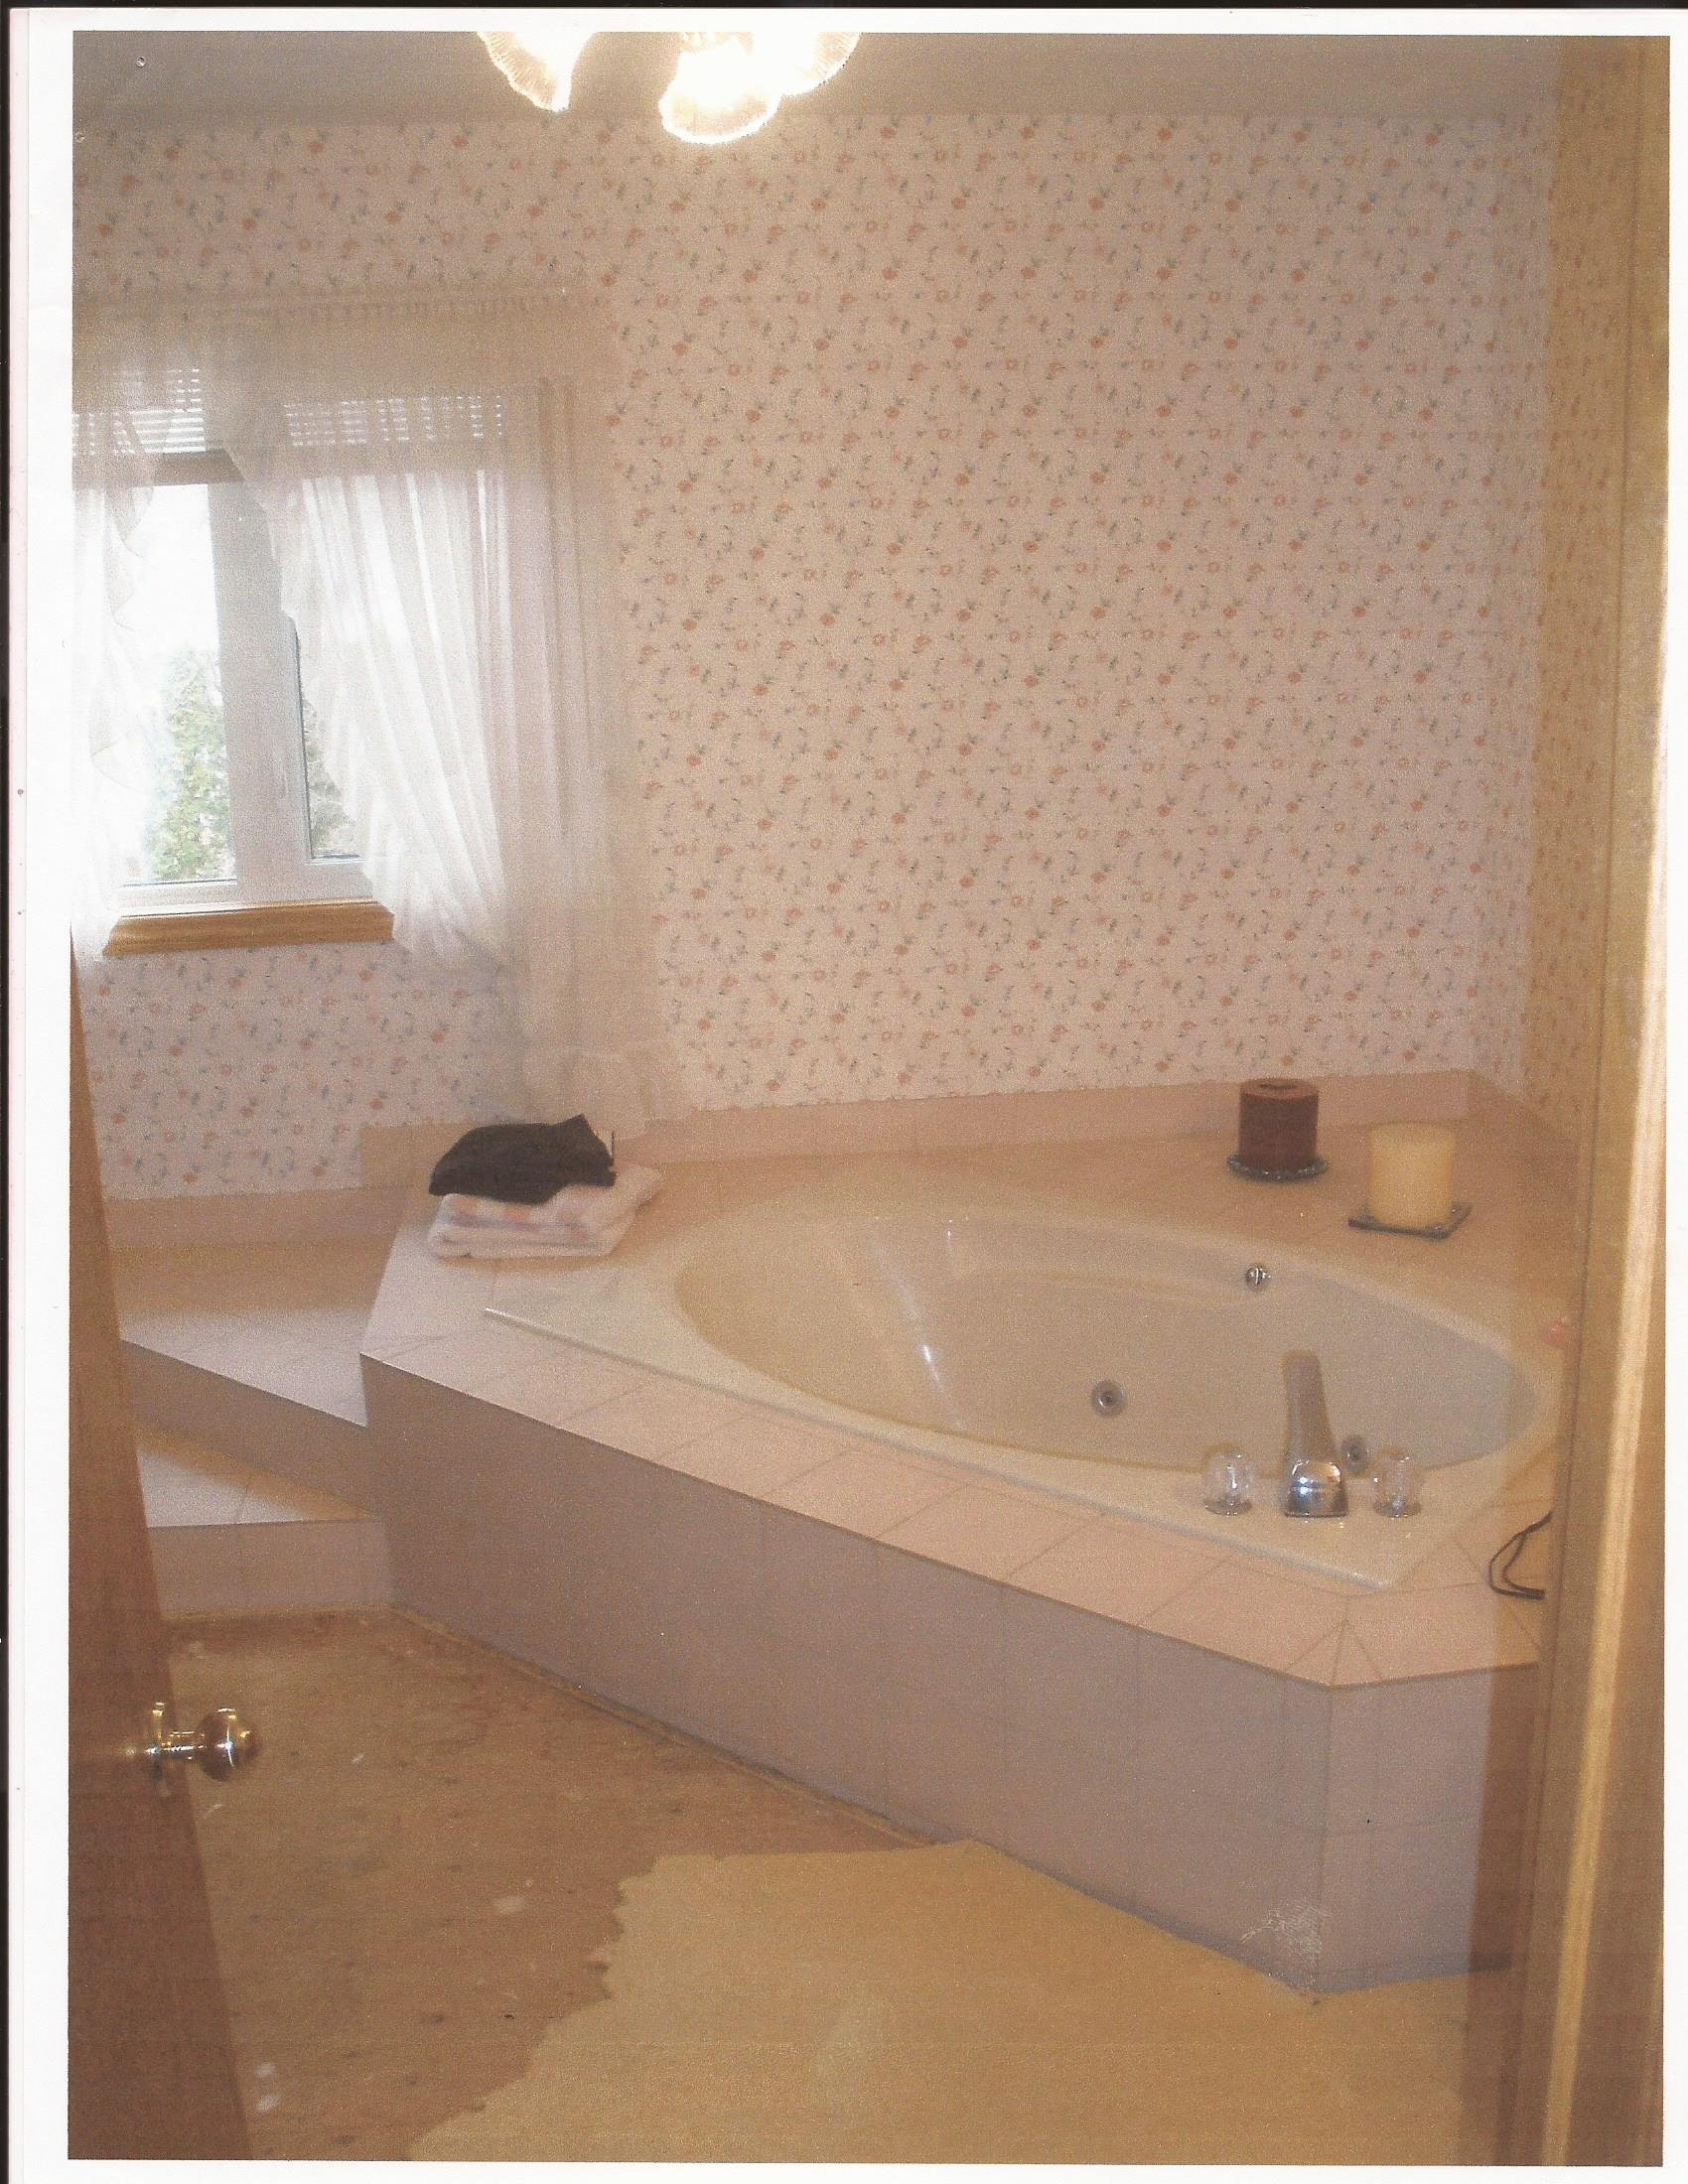 Ensuite Bathroom Renovation Guide AquaTech - A1 bathroom renovations